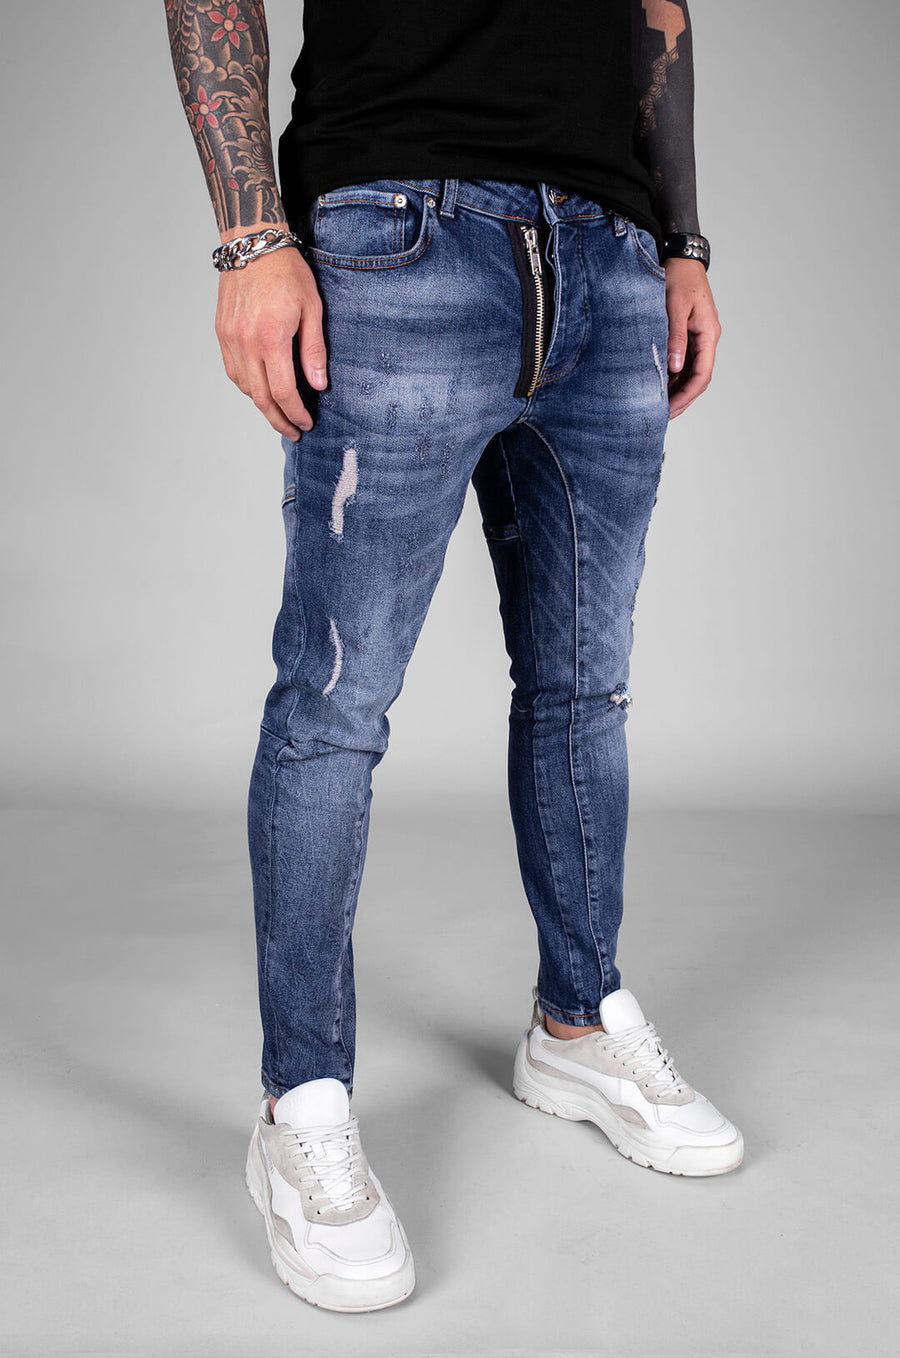 Sneakerjeans Blue Front Zippered Ripped Skinny Jeans BI-068